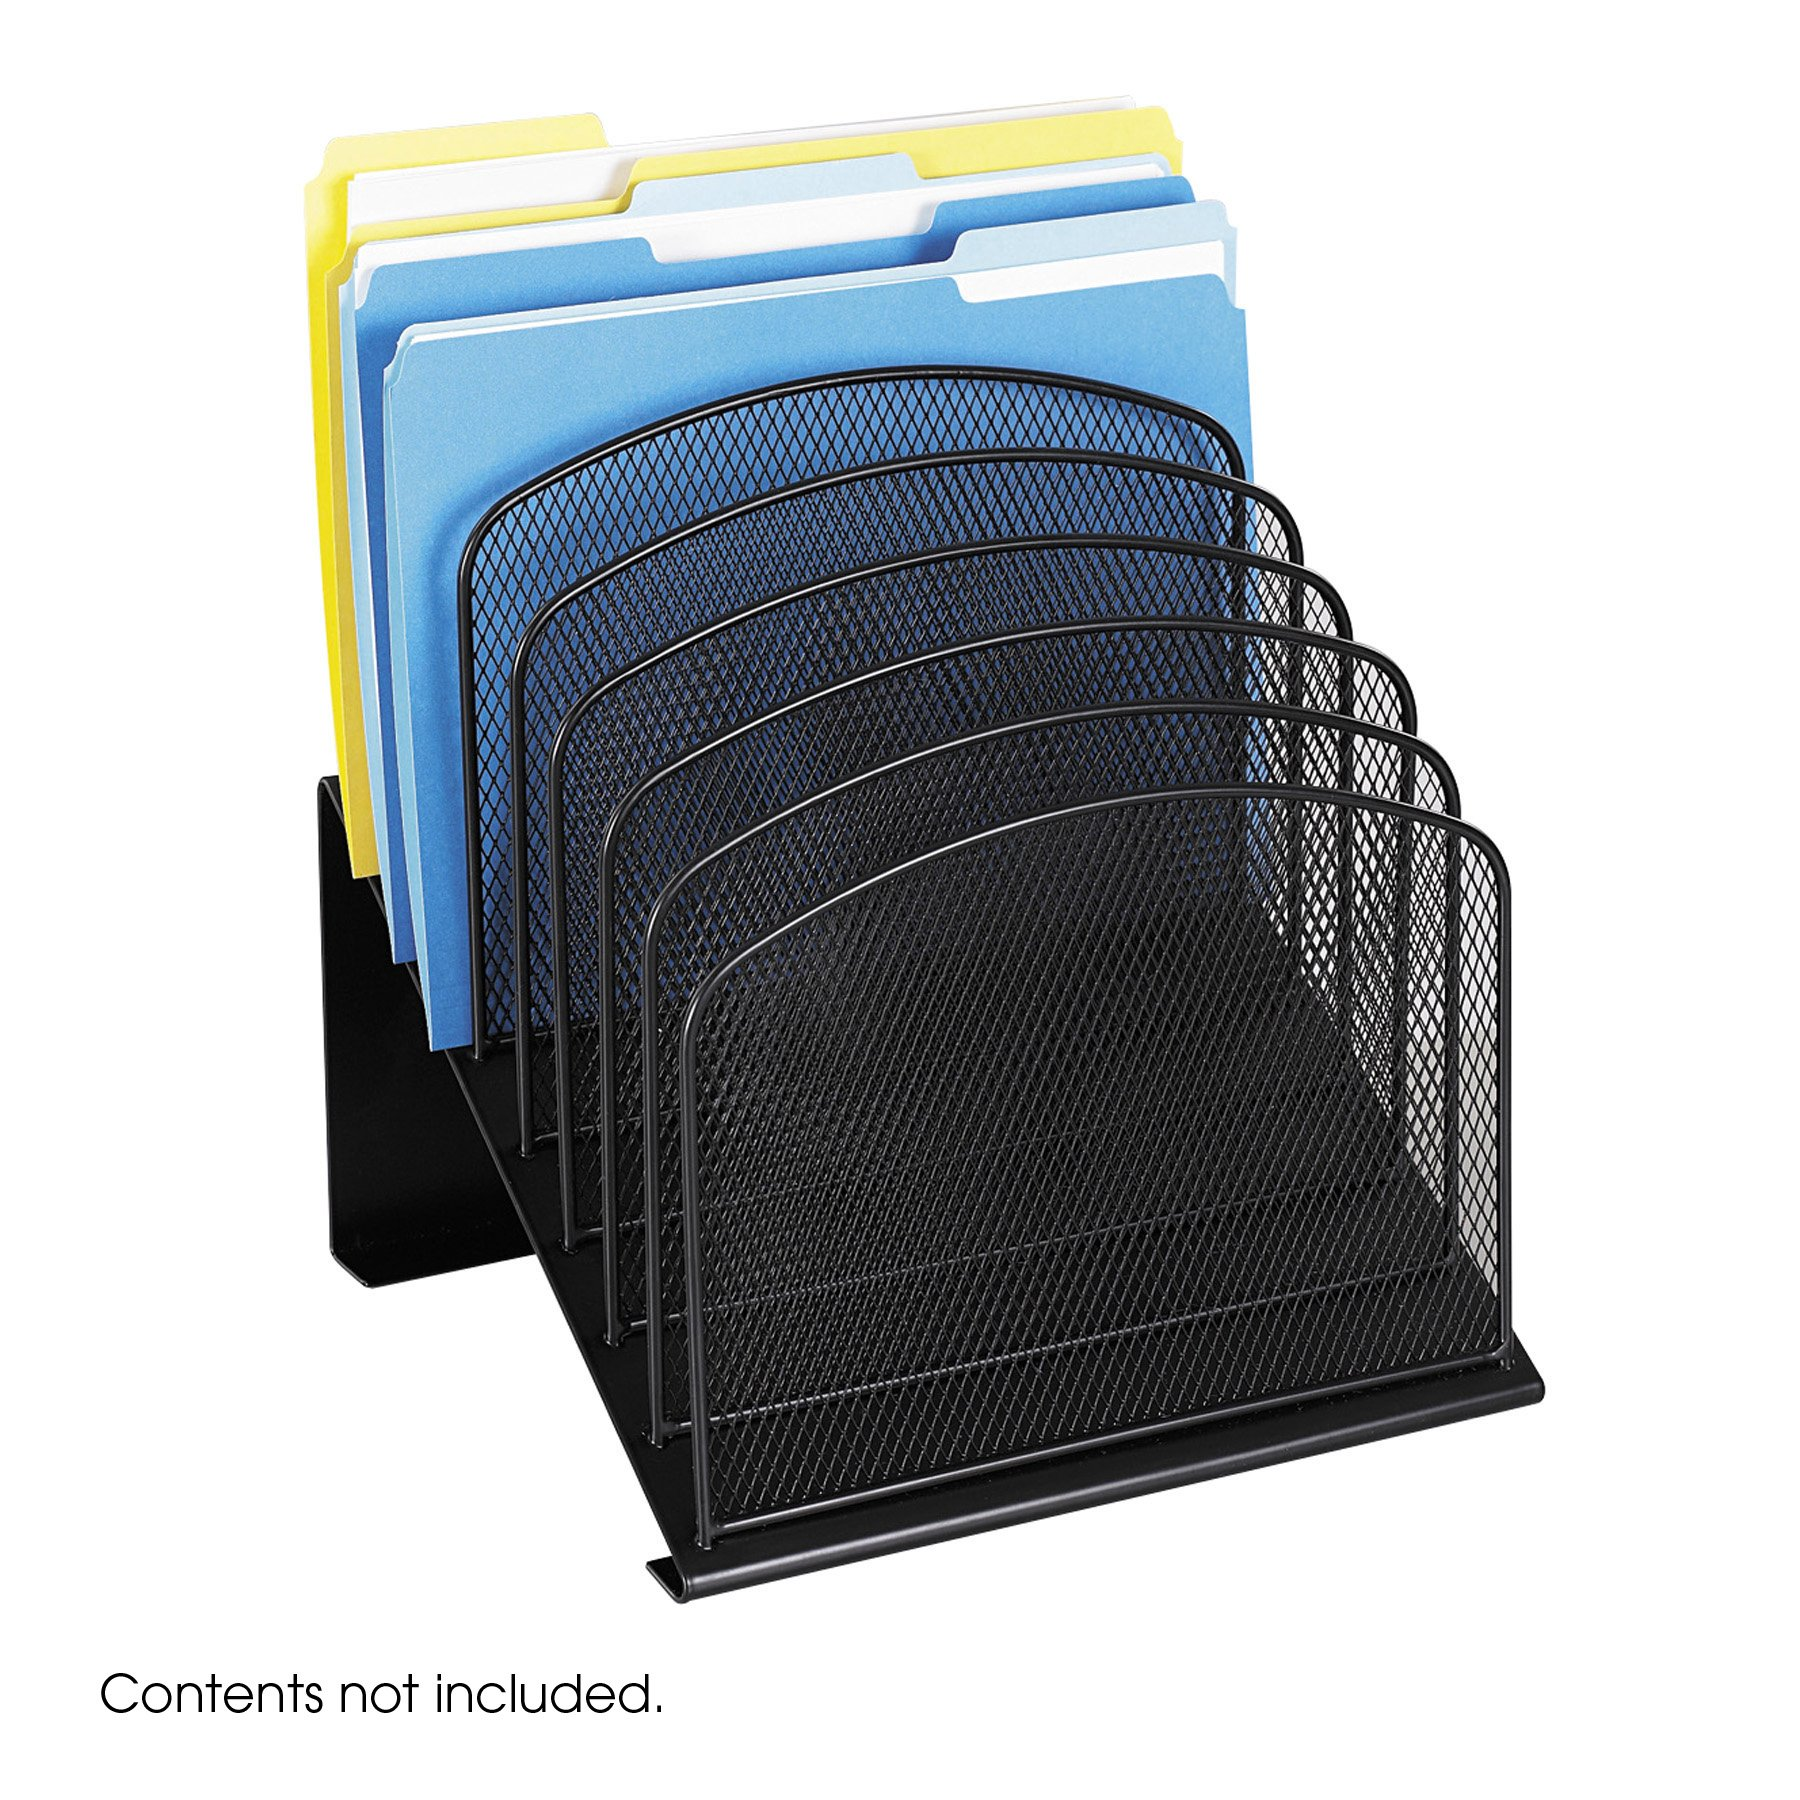 Safco Products 3258BL Onyx Mesh Desktop Organizer with 8 Tiered Sections, Black